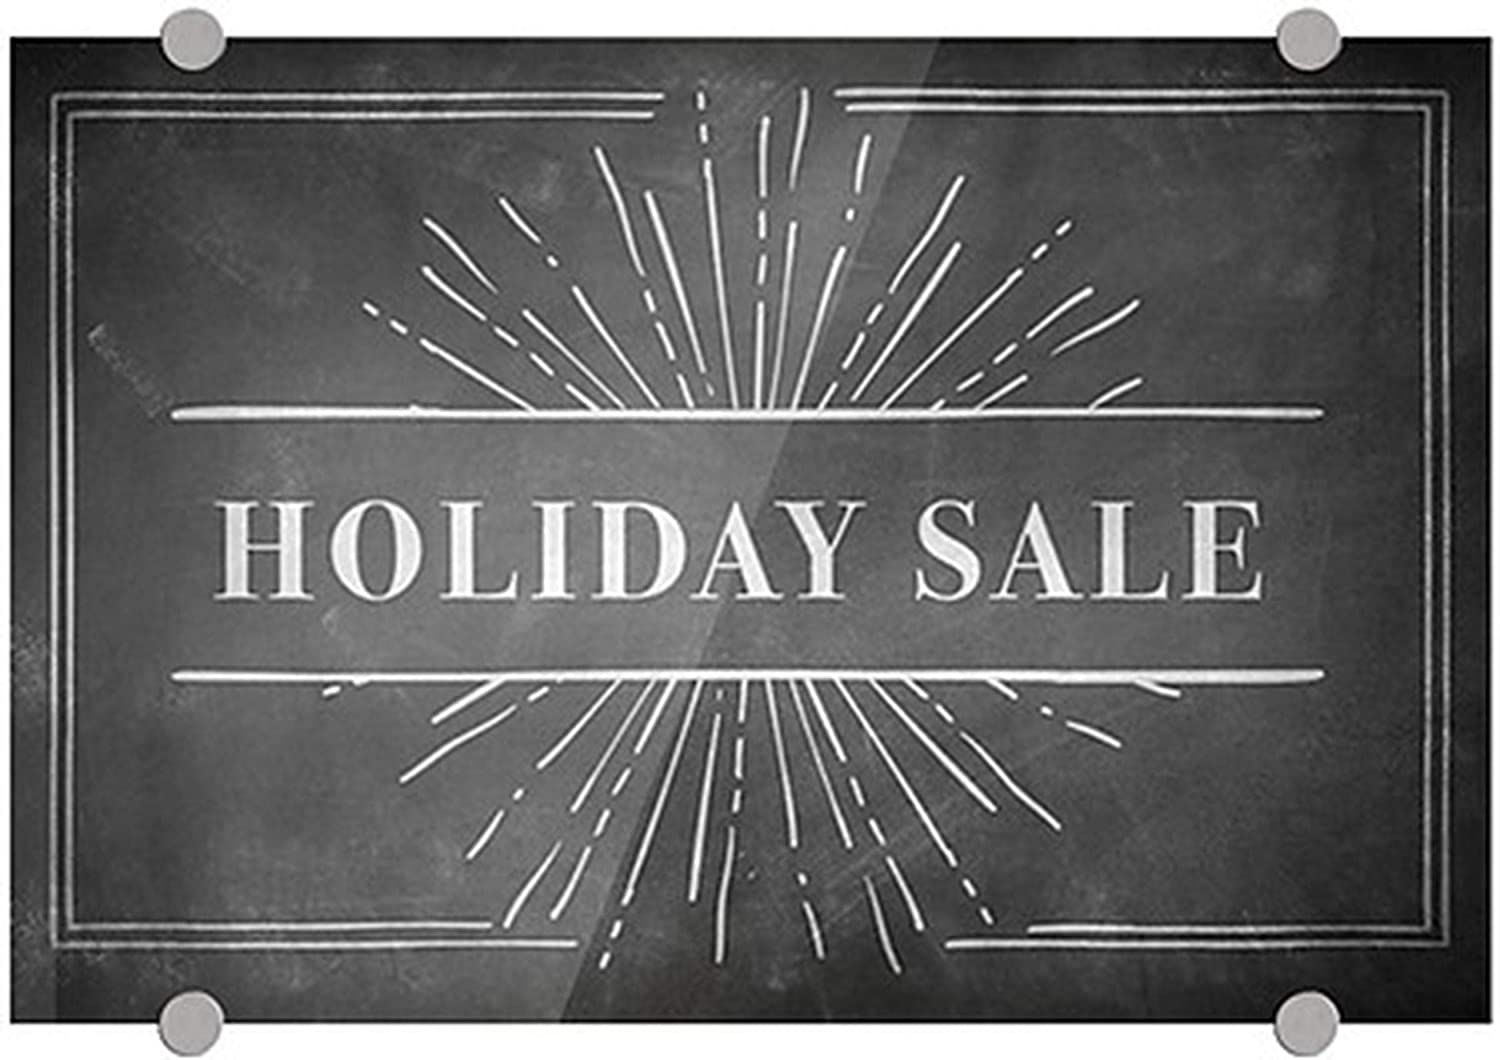 Challenge the lowest price of Japan ☆ CGSignLab 2455157_5absw_18x12_None Holiday Sale Free shipping on posting reviews Chalk 8 1 Burst